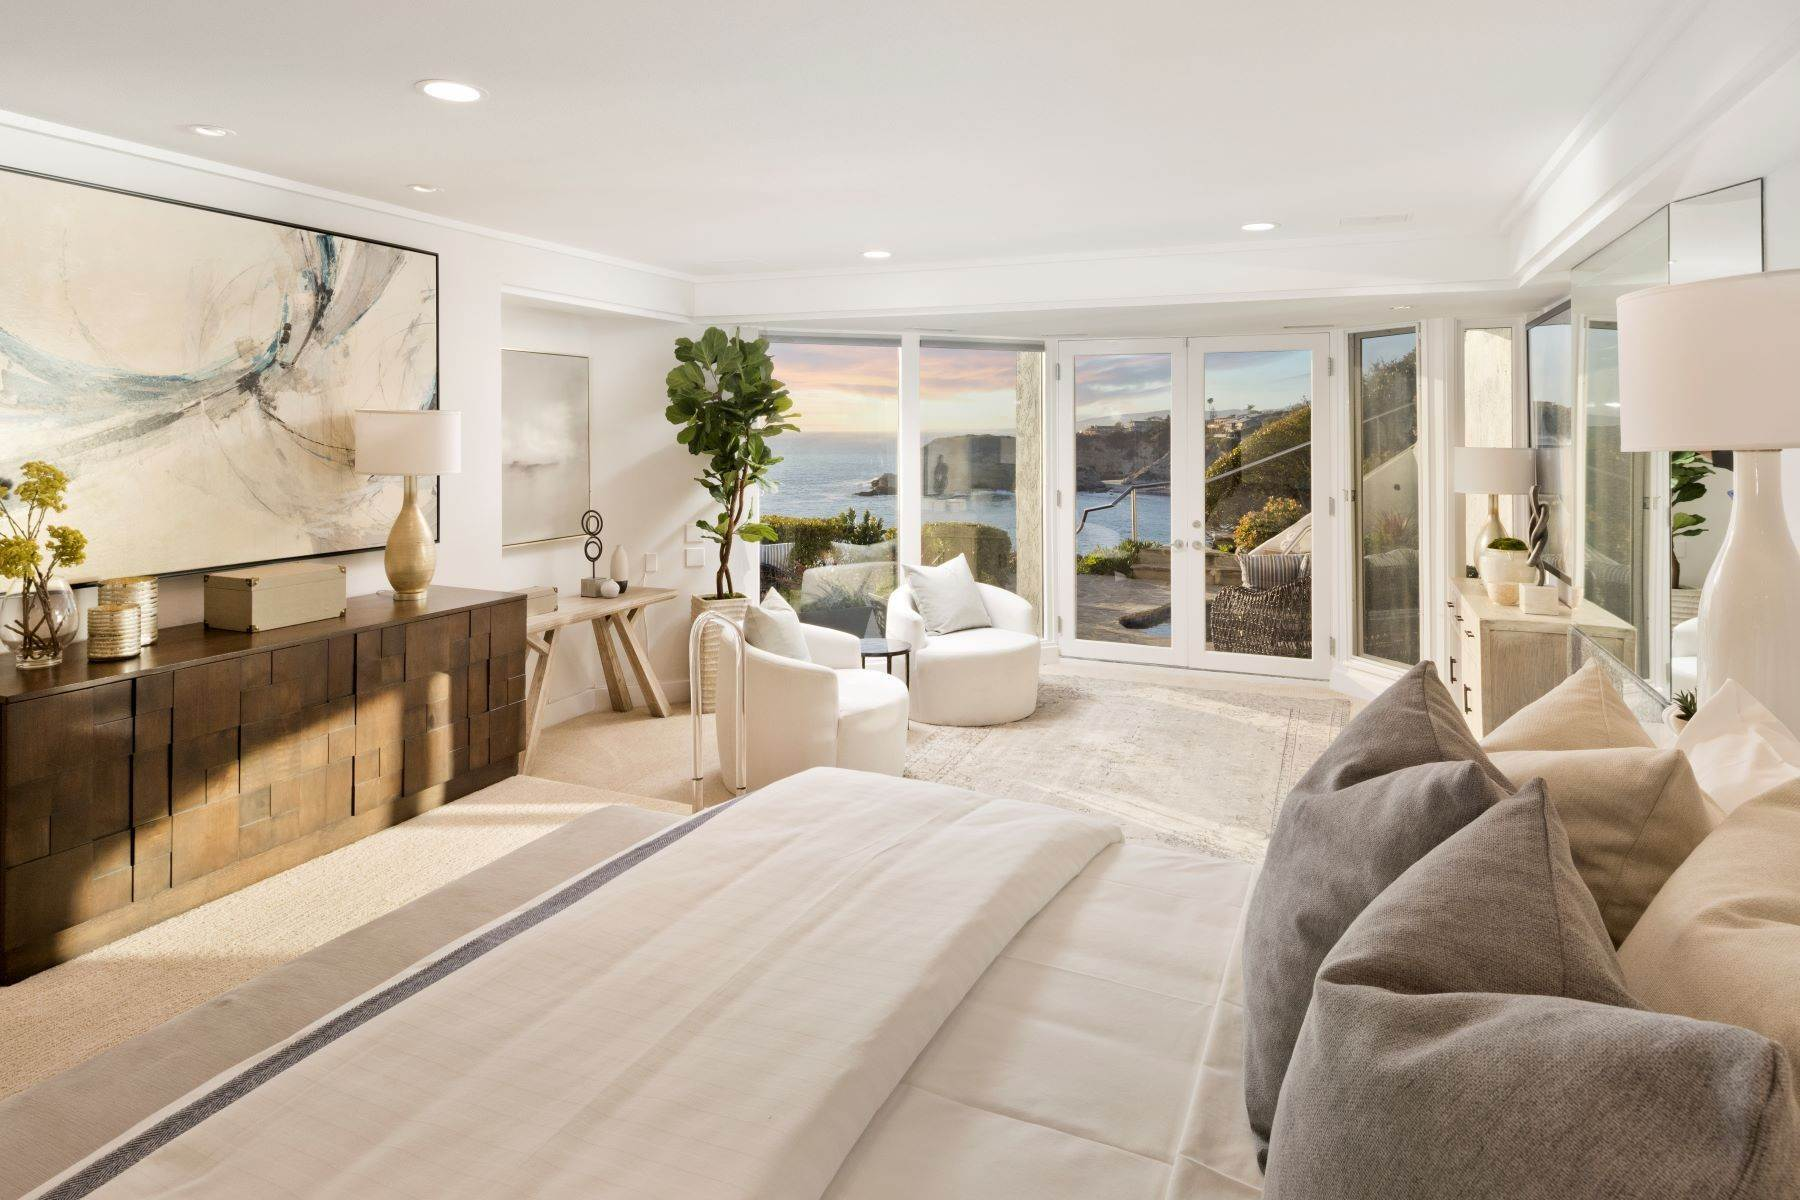 31. Single Family Homes for Sale at 112 South La Senda Drive, Laguna Beach, CA 92651 112 South La Senda Drive Laguna Beach, California 92651 United States